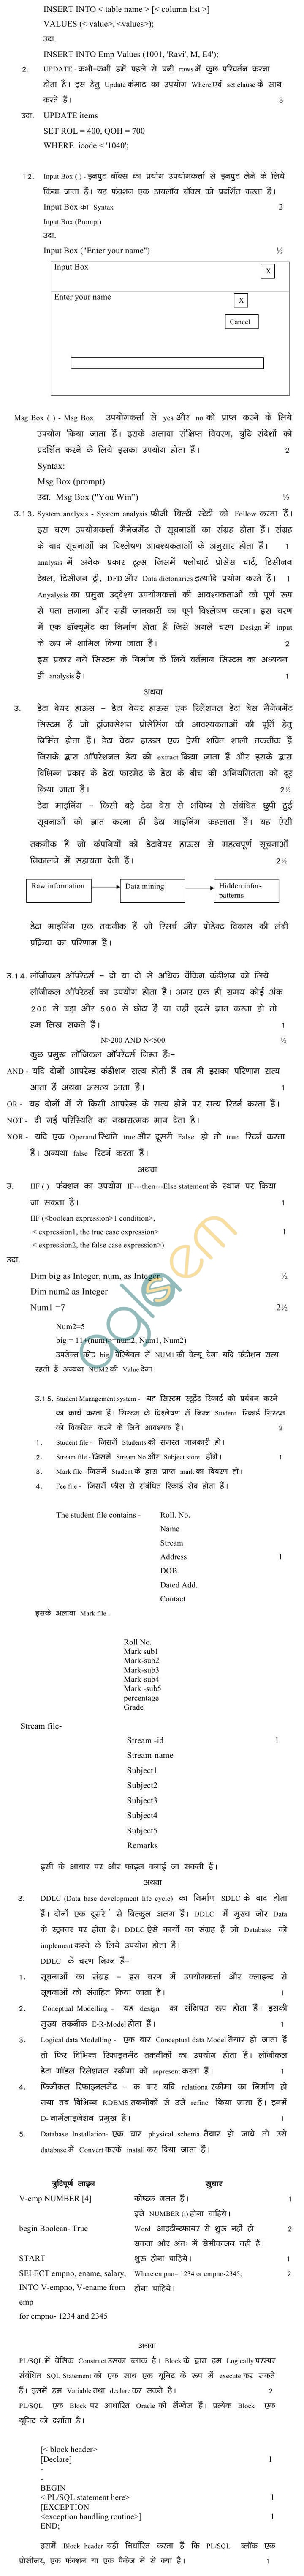 MP Board Class XII Informatic Pratices Model Questions & Answers - Set 3